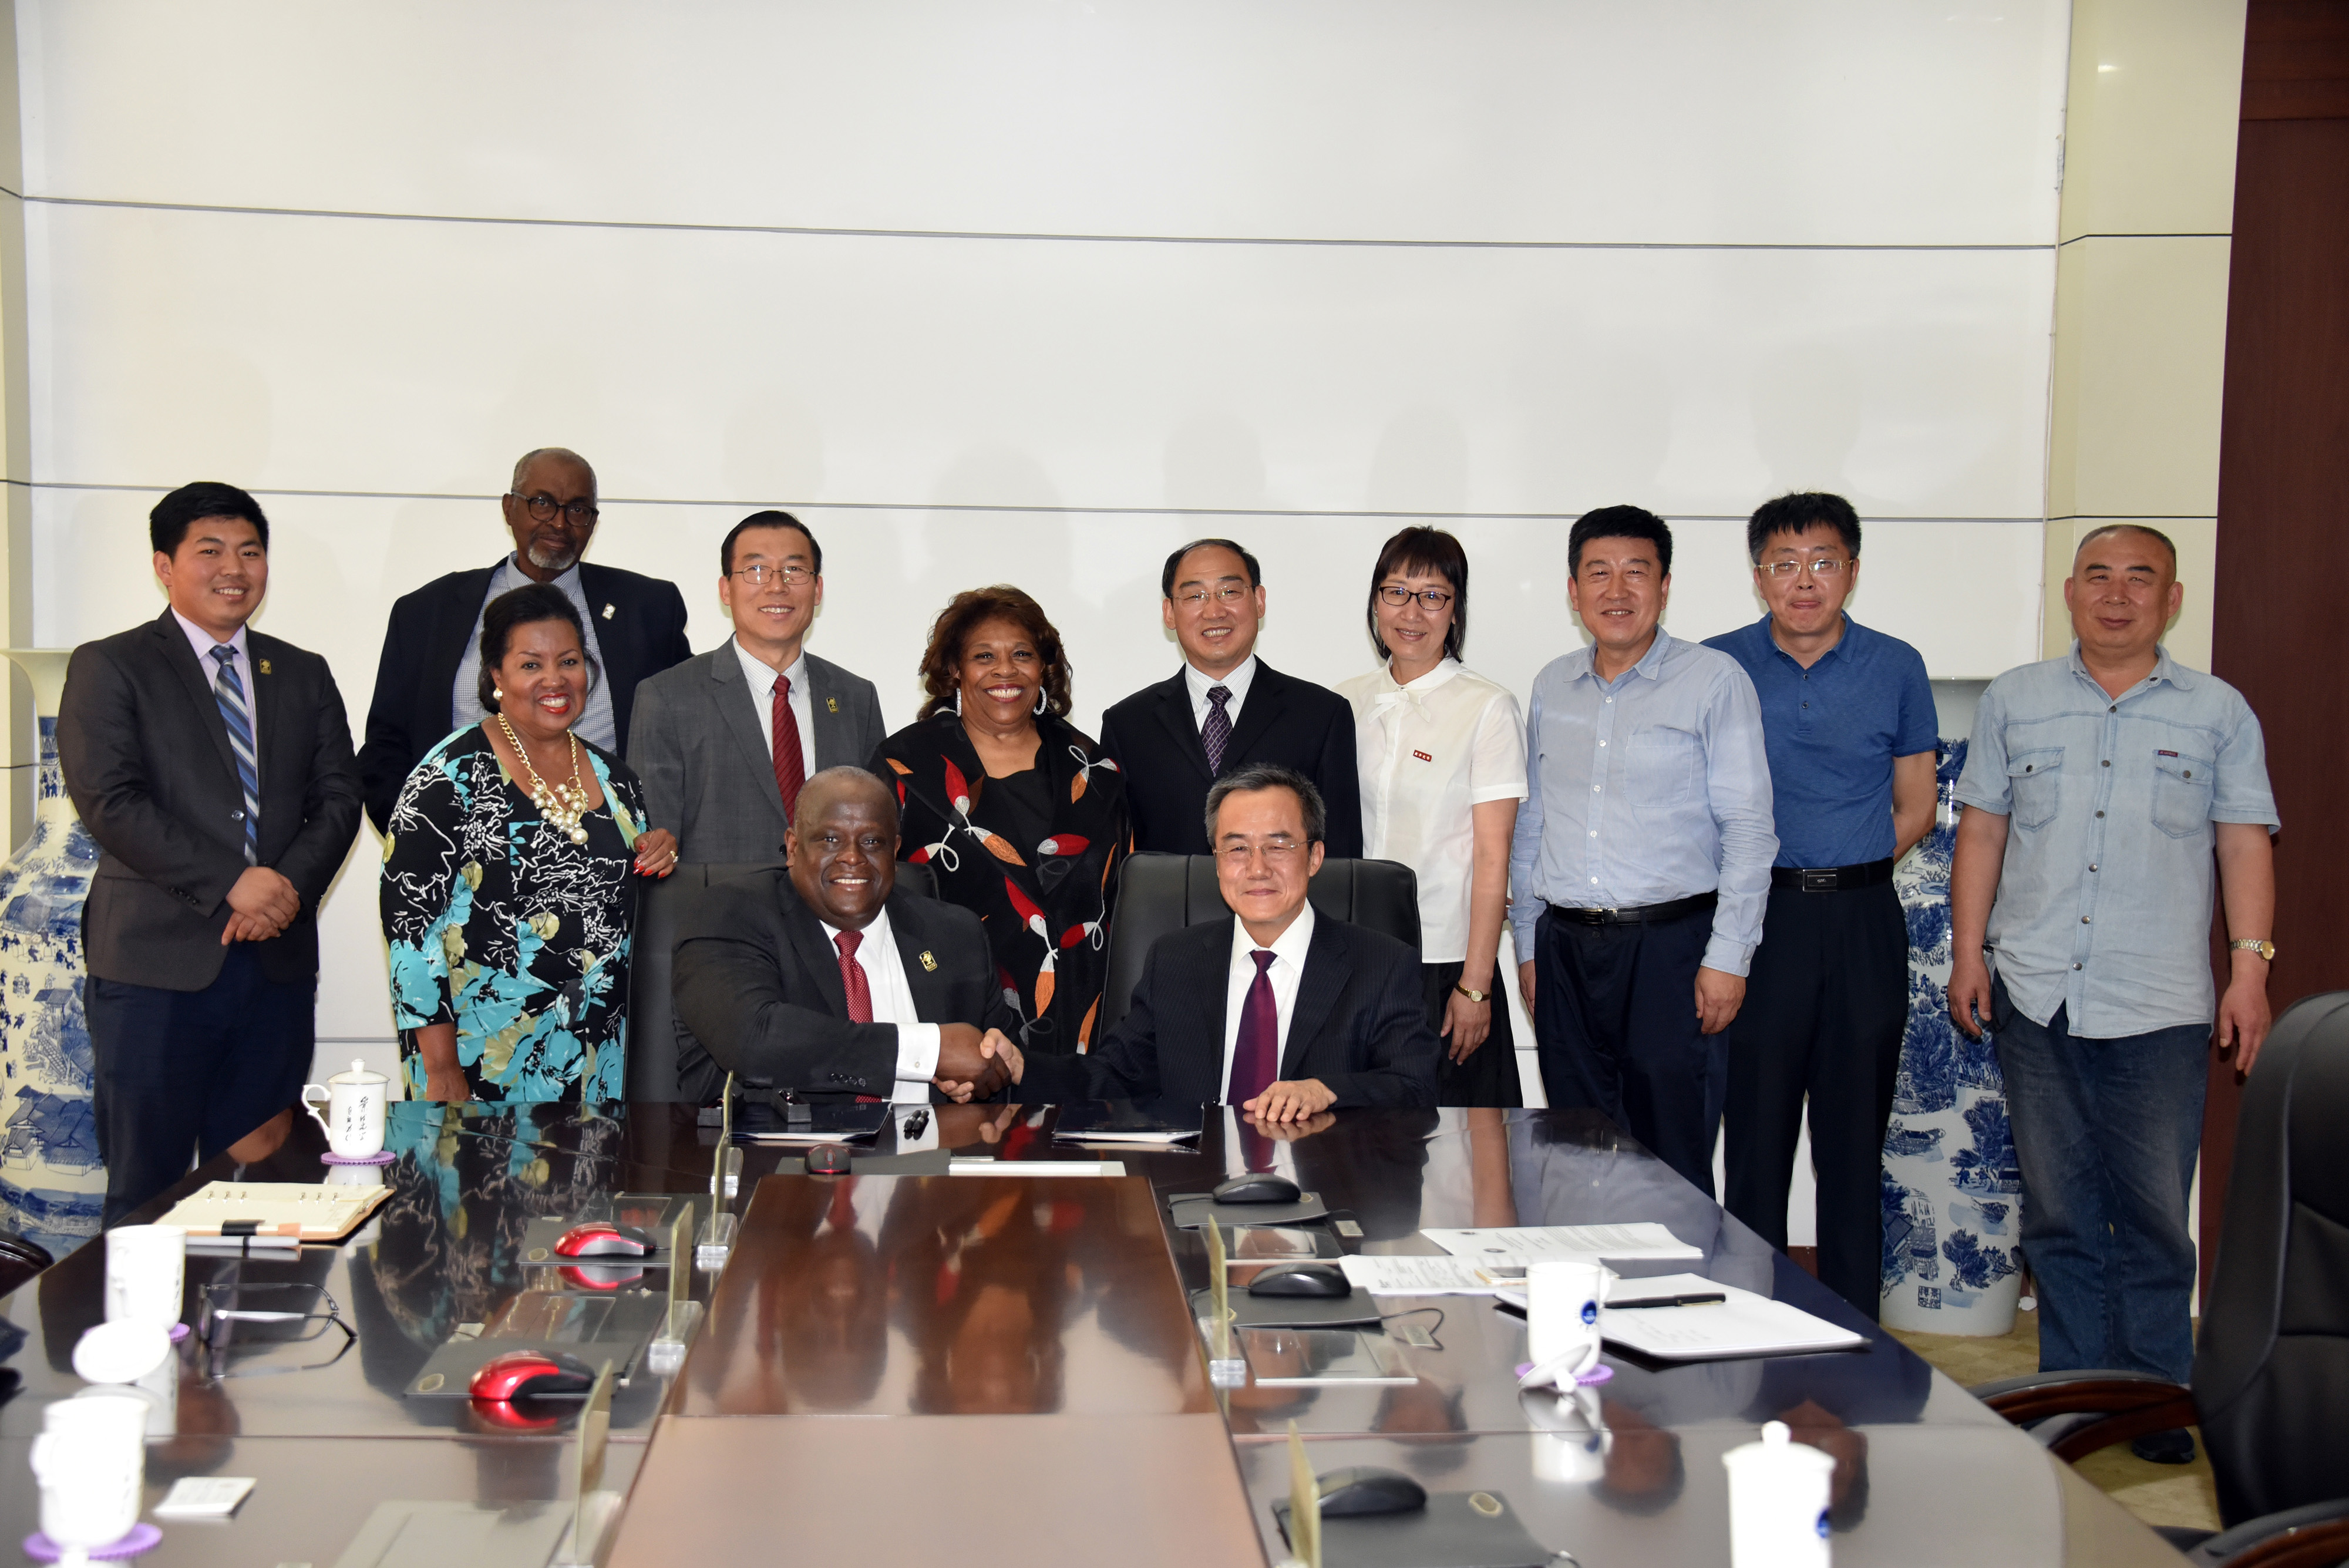 Tony Boyle, Vice President of Strategic Enrollment Management, and JiZong Qi, Vice President of Beihua University of China, shake hands after signing an agreement that establishes a joint English Language Institute in that Far East country.